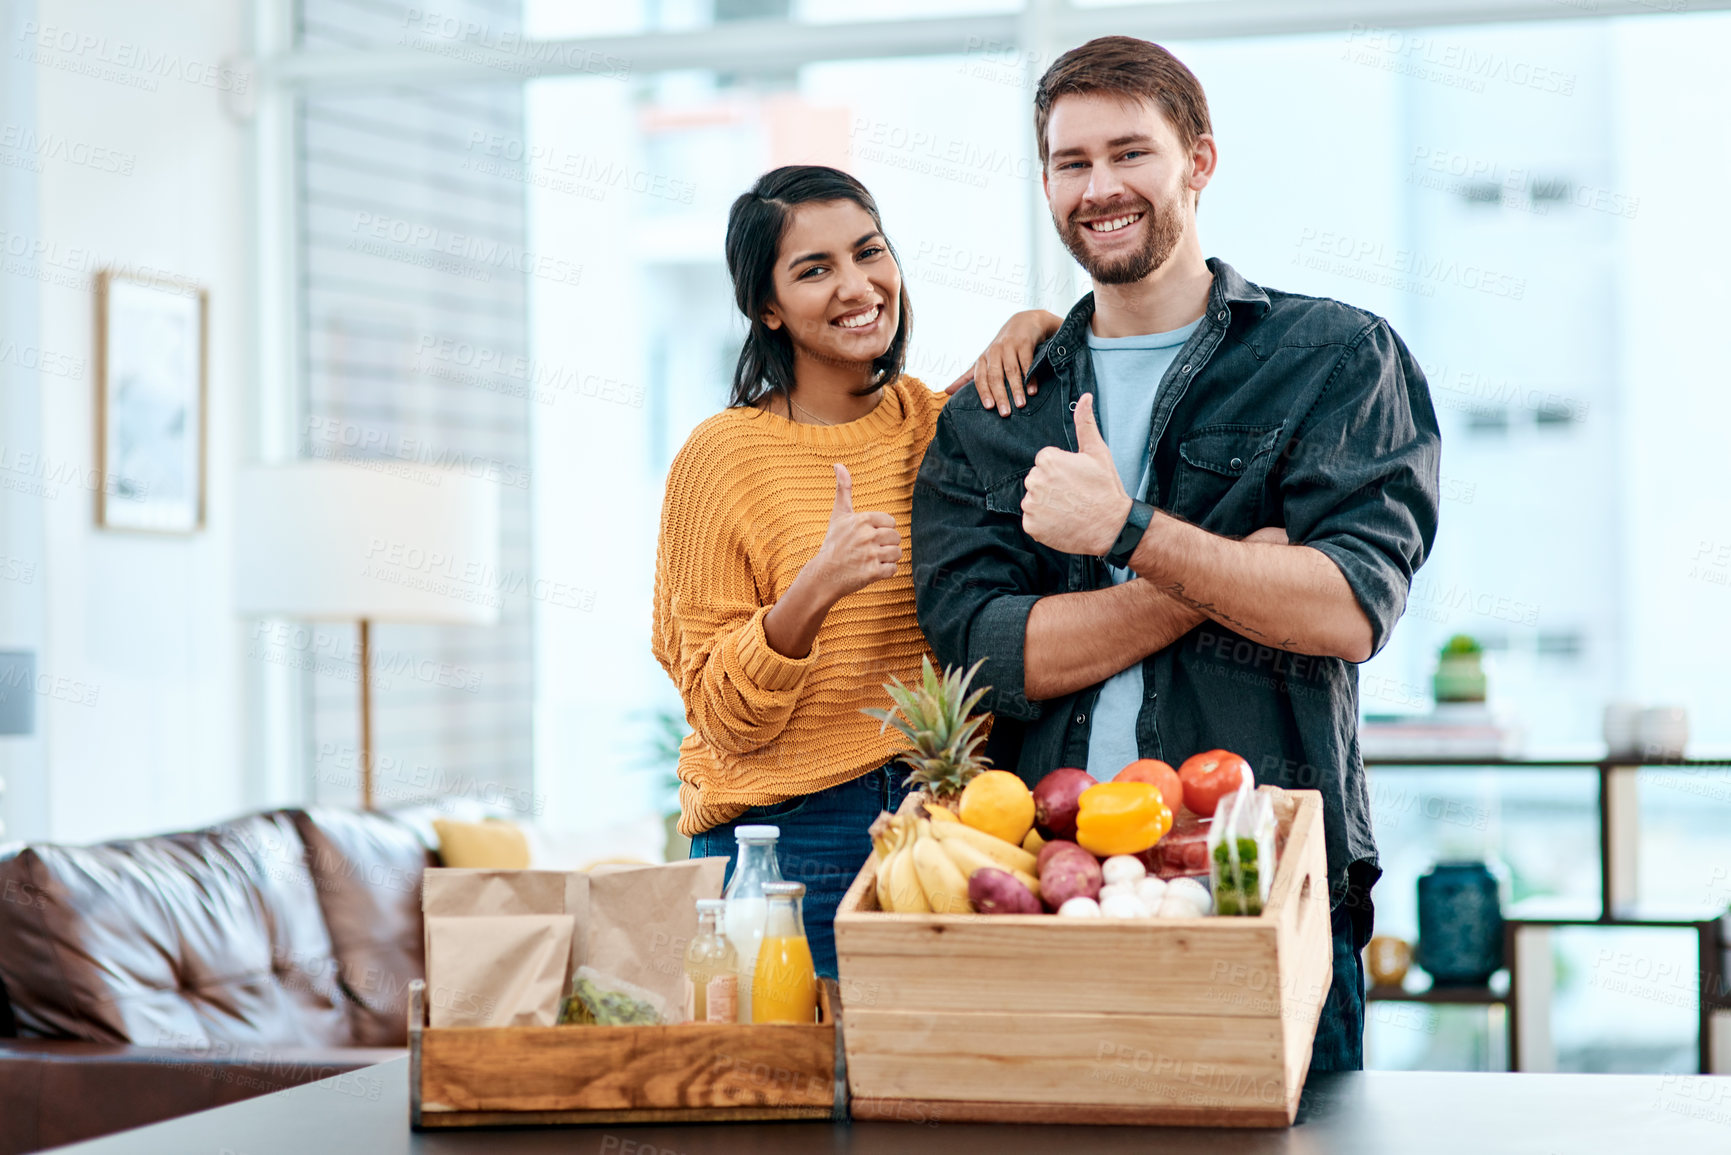 Buy stock photo Shot of a happy young couple showing thumbs up after unpacking their healthy groceries at home